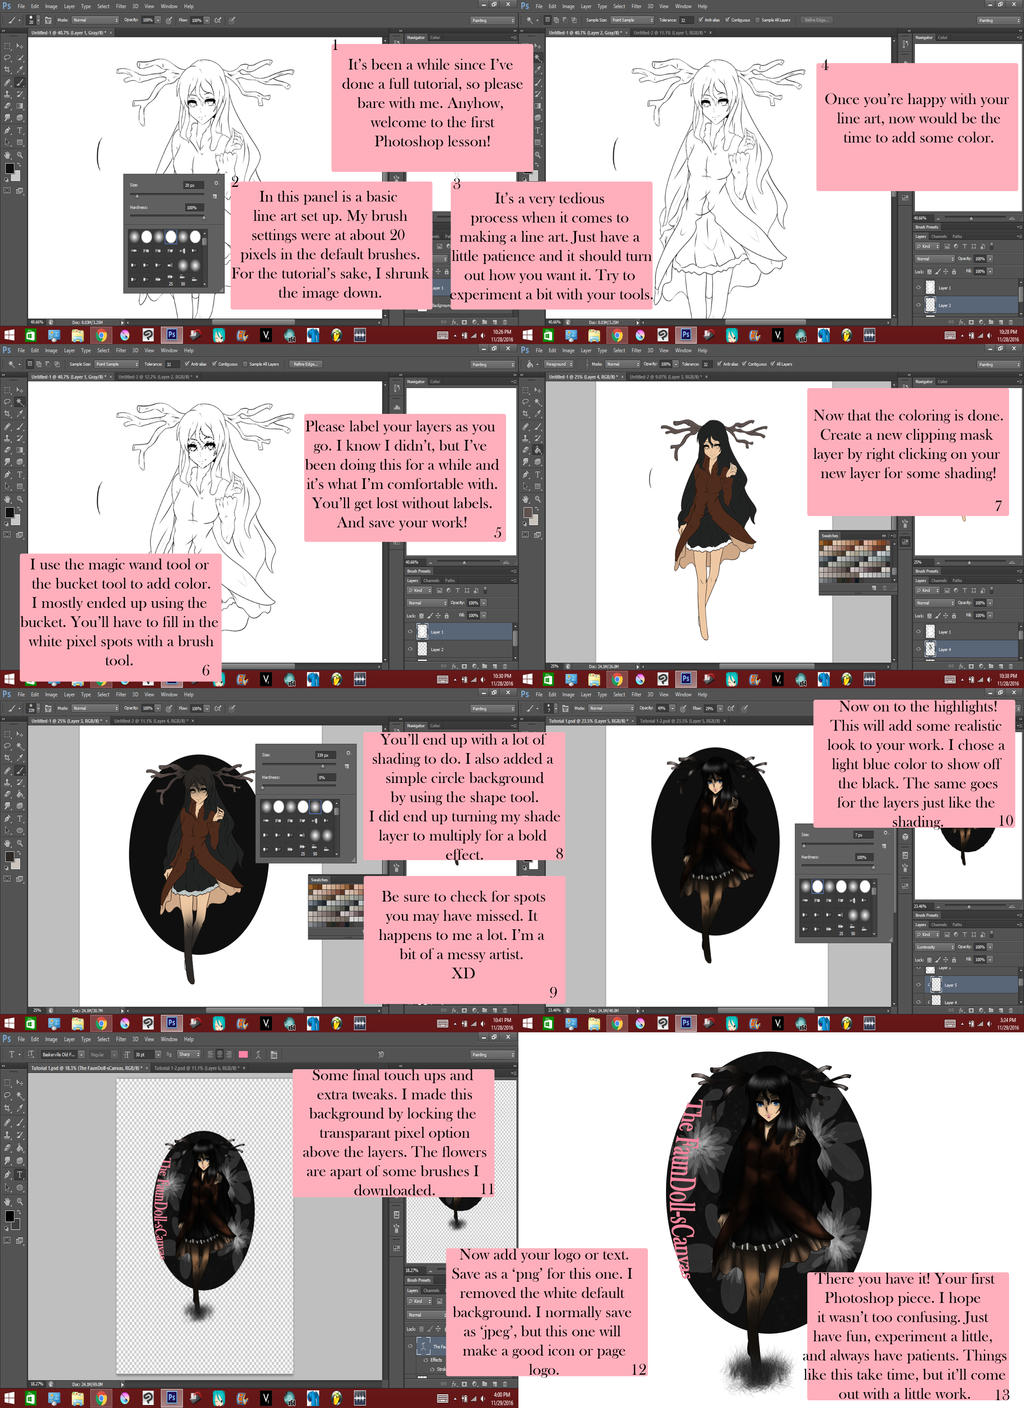 How to color your art in photoshop -  Photoshop 101 Tutorial 1 Line Art And Color By Thefaundoll Scanvas